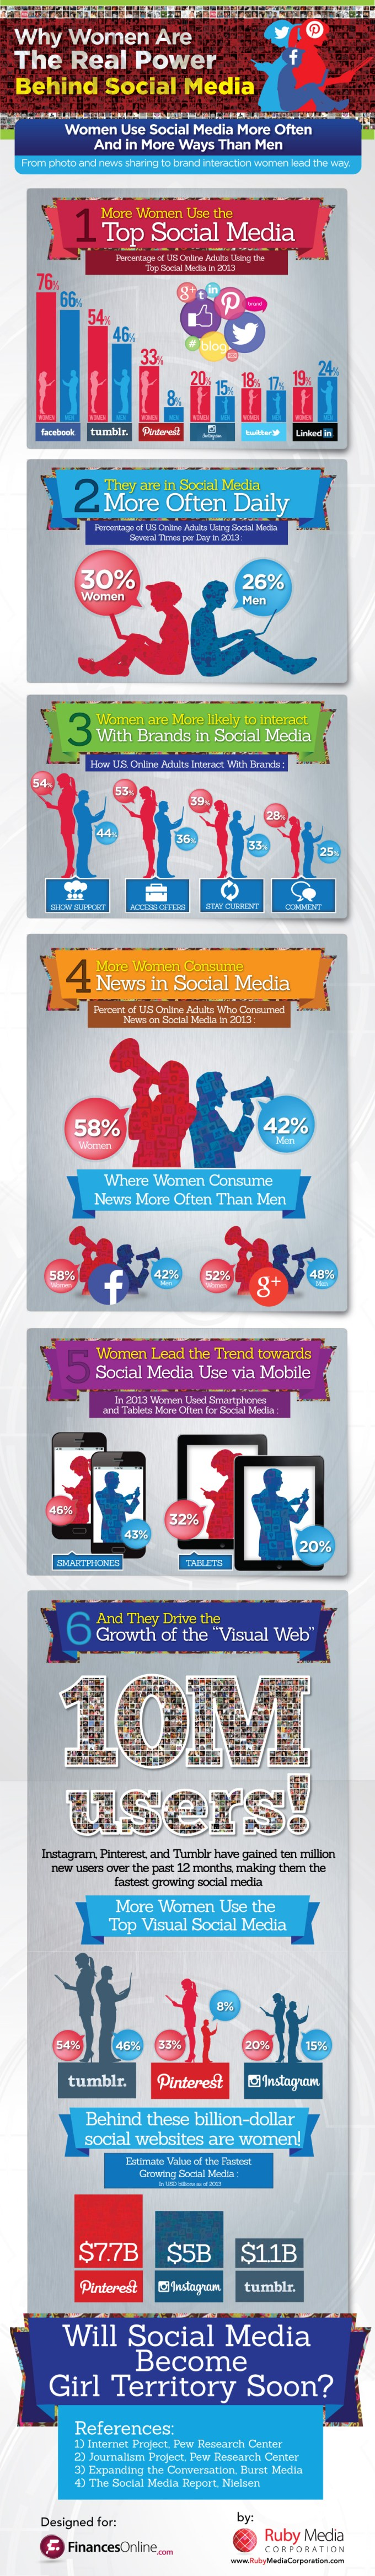 Most Popular Social Media Sites Review: Why Women Are The Real Power Behind The Huge Success Of Tumblr, Pinterest and Instagram